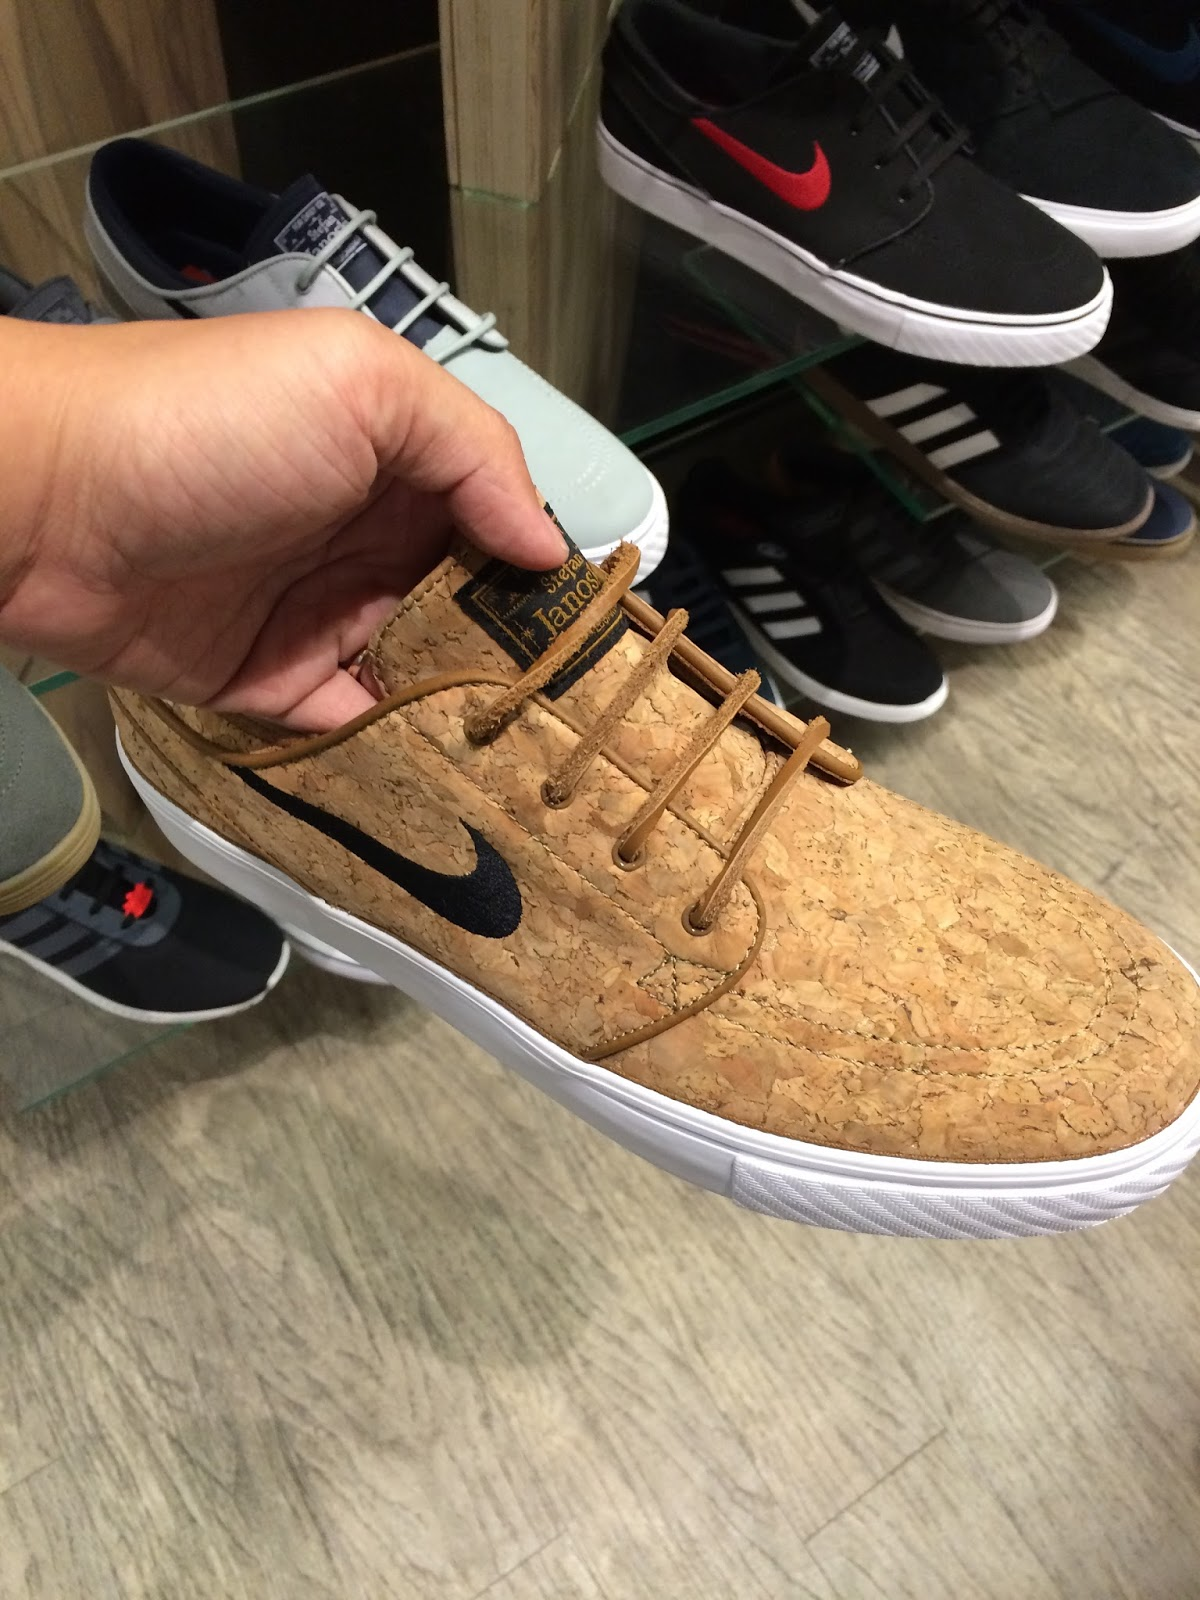 more photos b5c01 02bcb The newest addition to the Sun Diego Fashion Valley shelves- the Nike SB  Zoom Stefan Janoski Elite Cork Skate Shoes. Yes, cork! A sales associate  shared ...